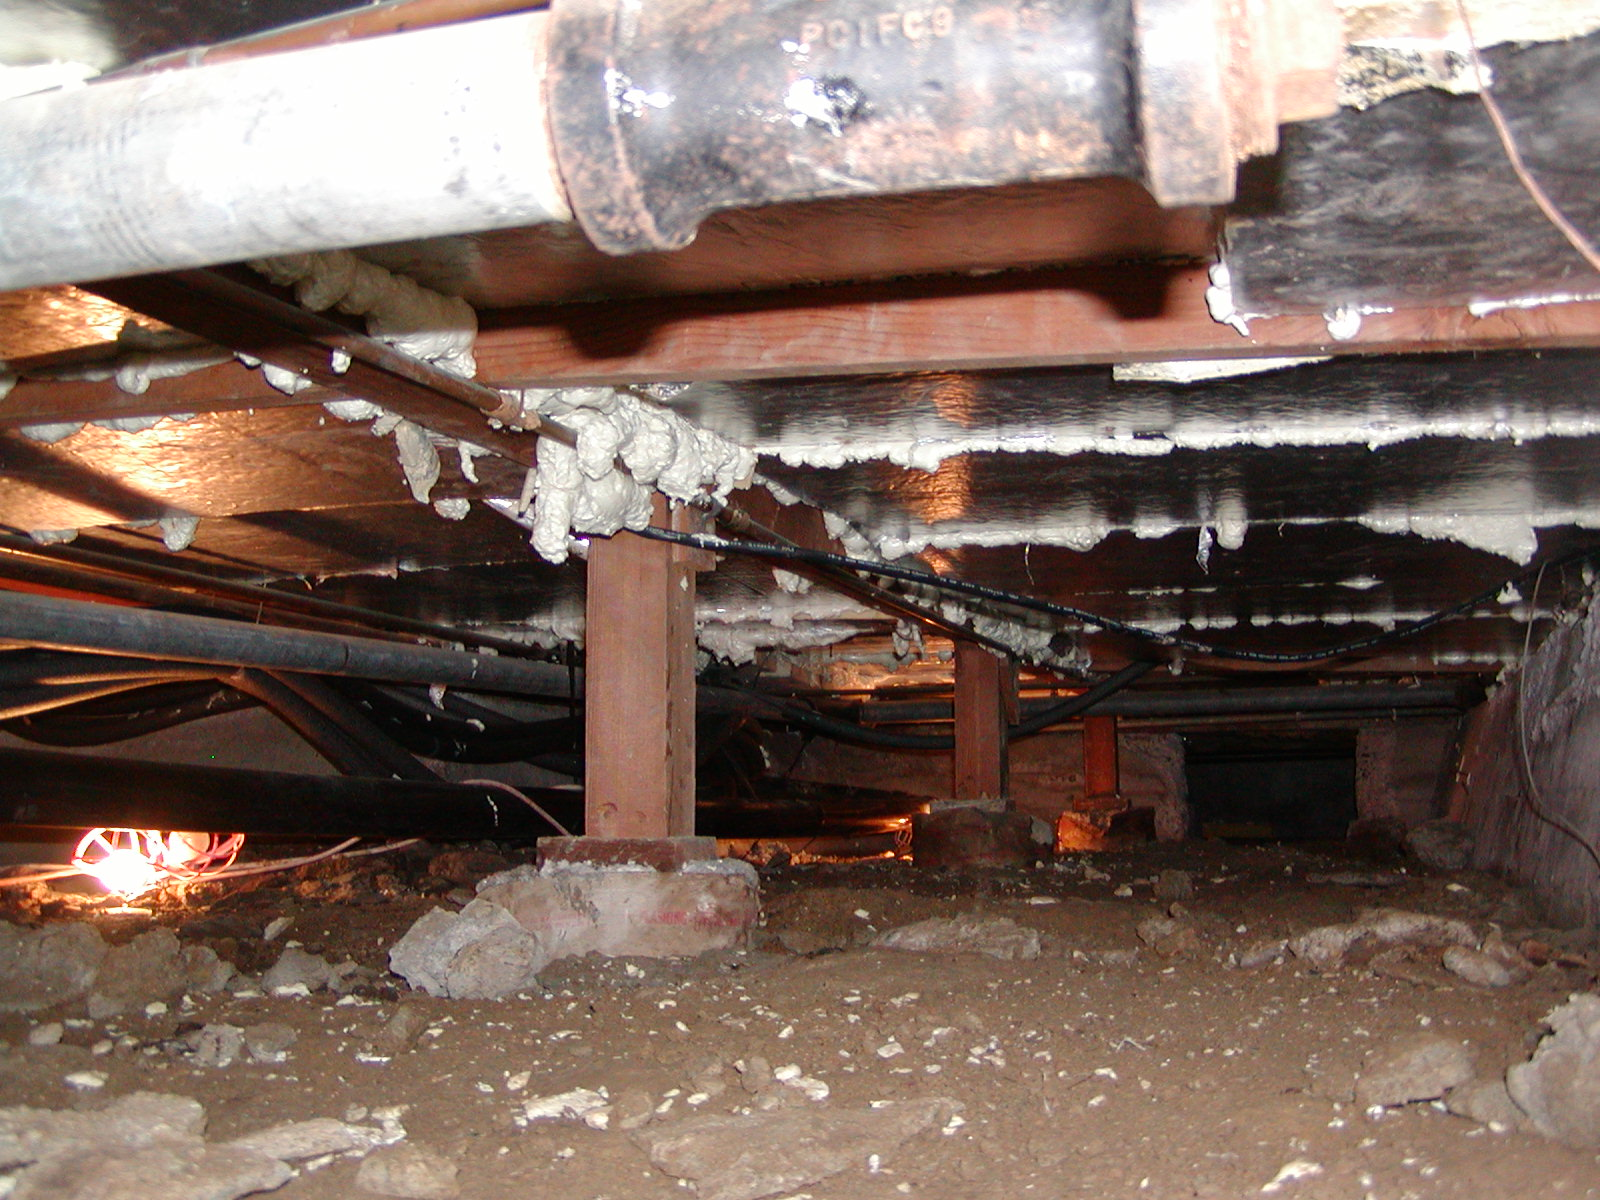 39 safe practices for home inspectors 39 course page 756 for Crawl space plumbing